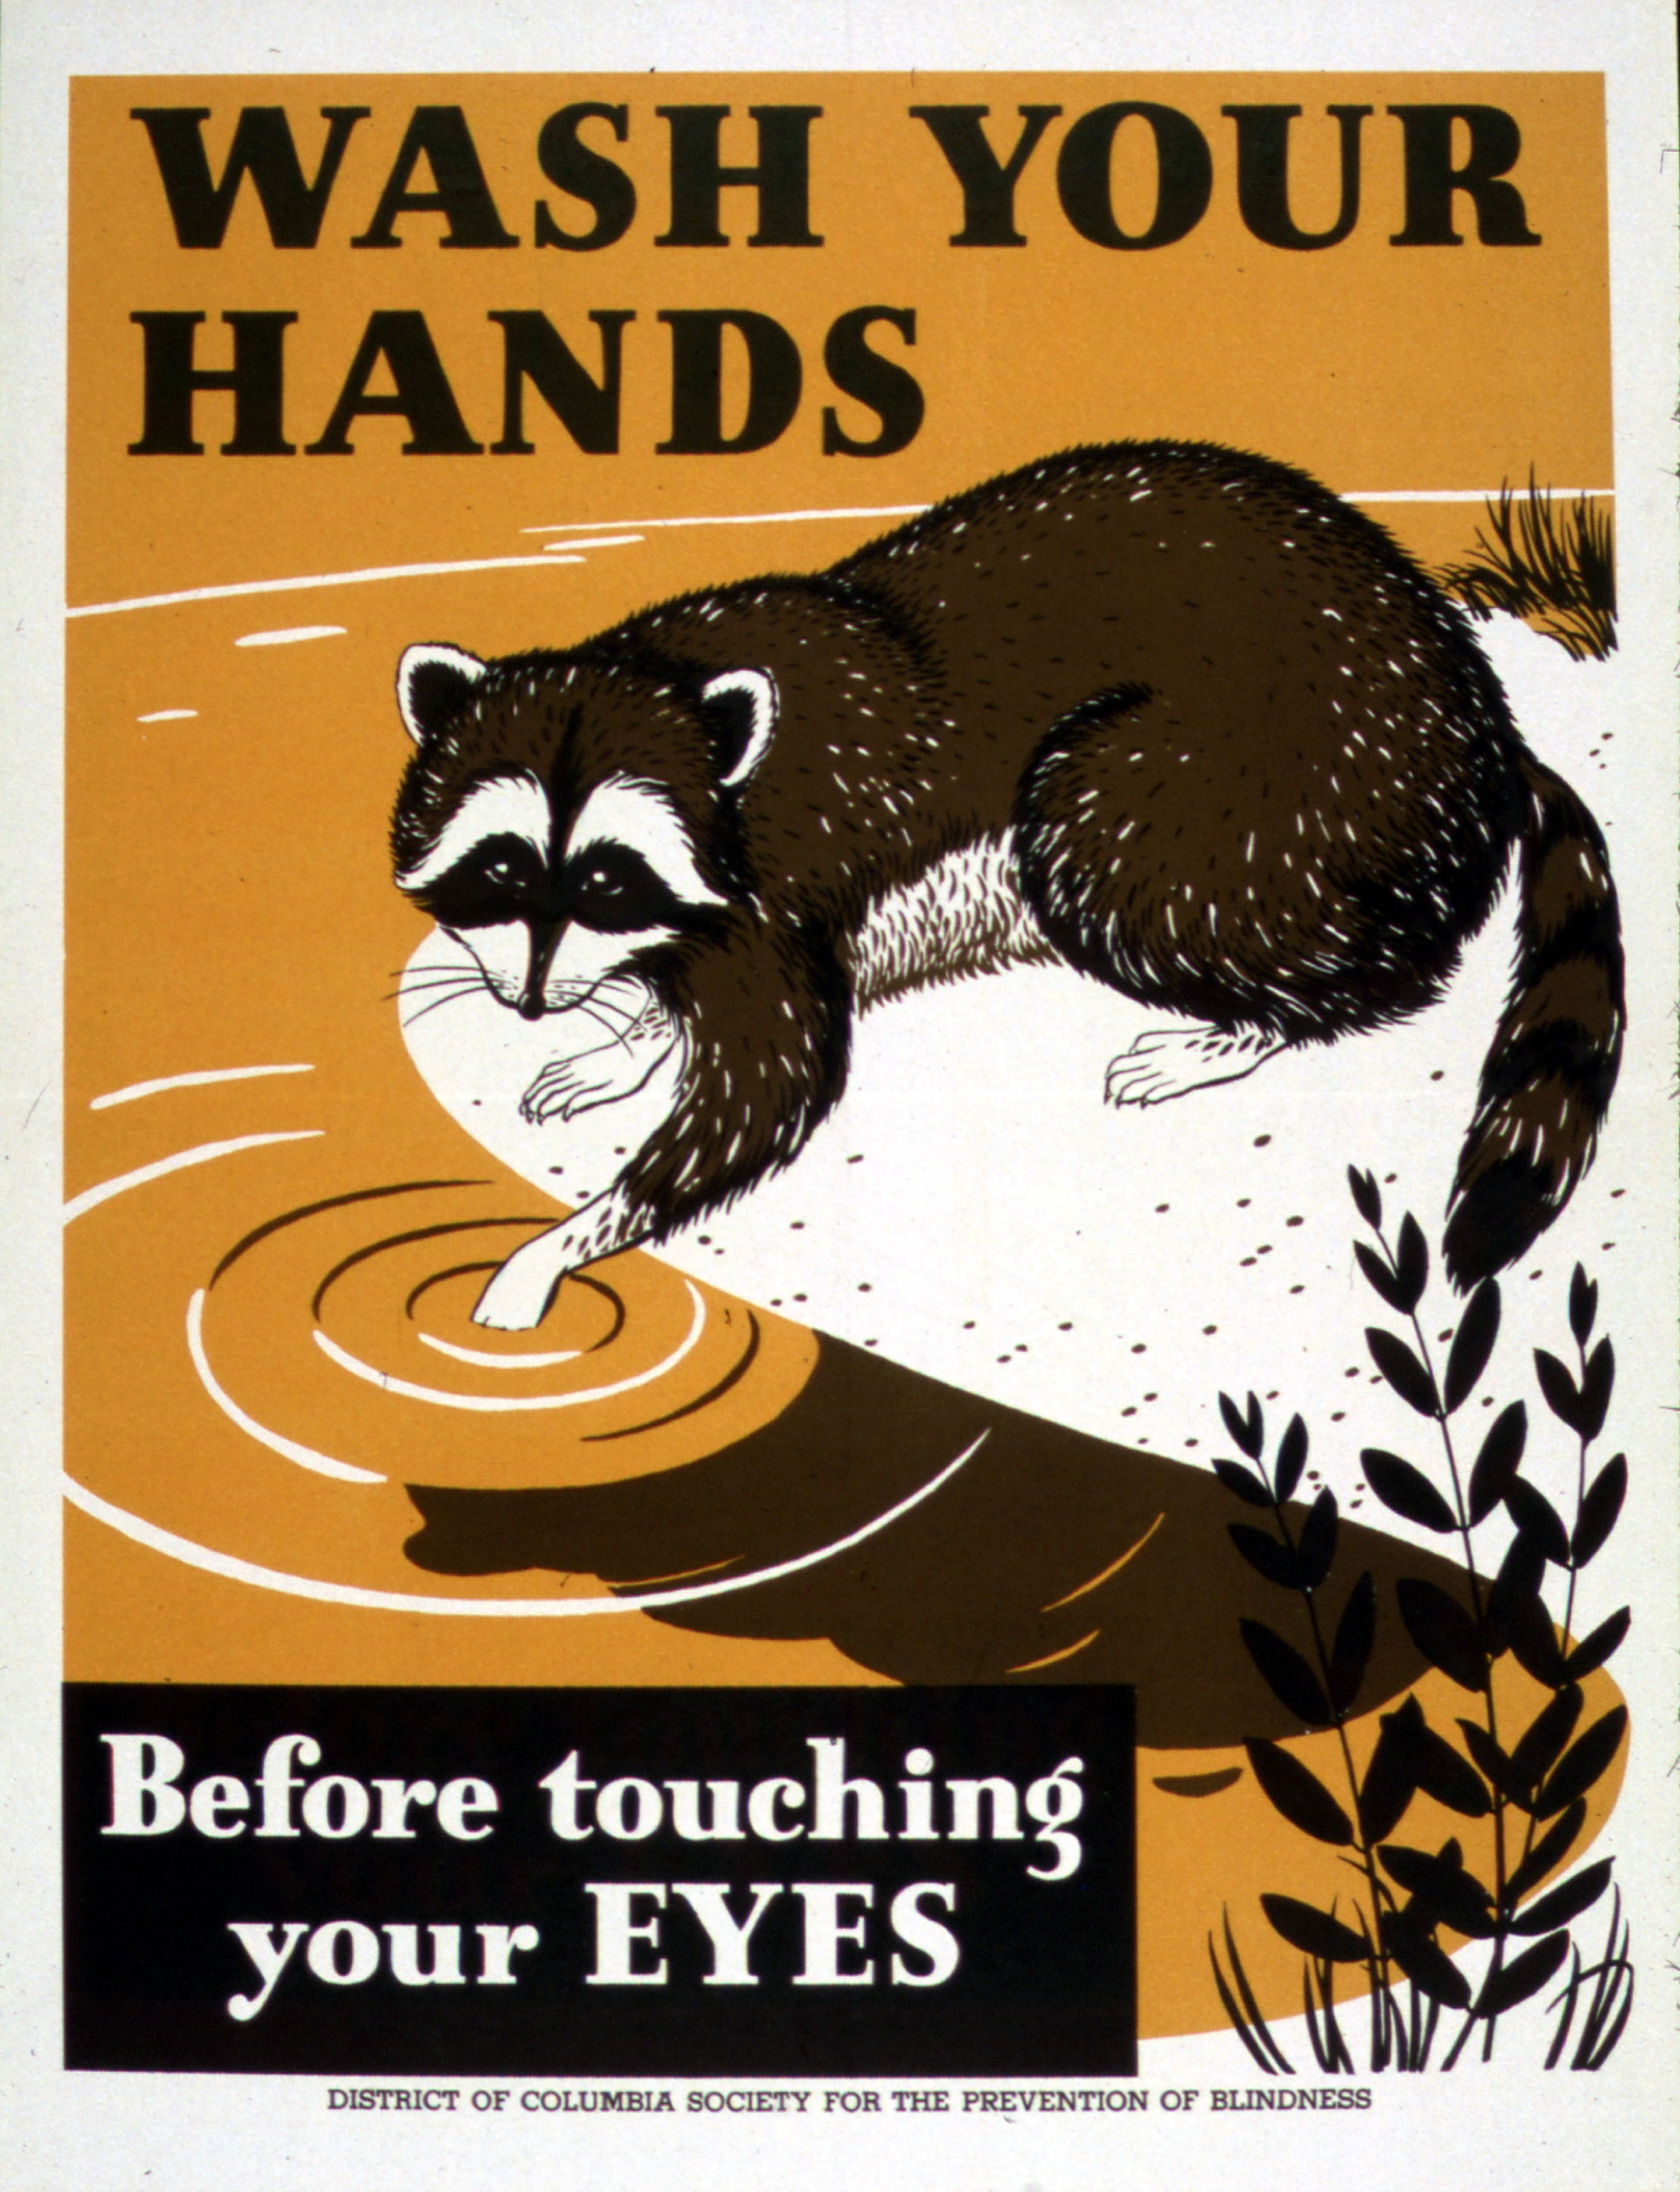 One simple way of fighting off germs involves the use of soap and water. (Credit: U.S. National Archives and Records Administration)